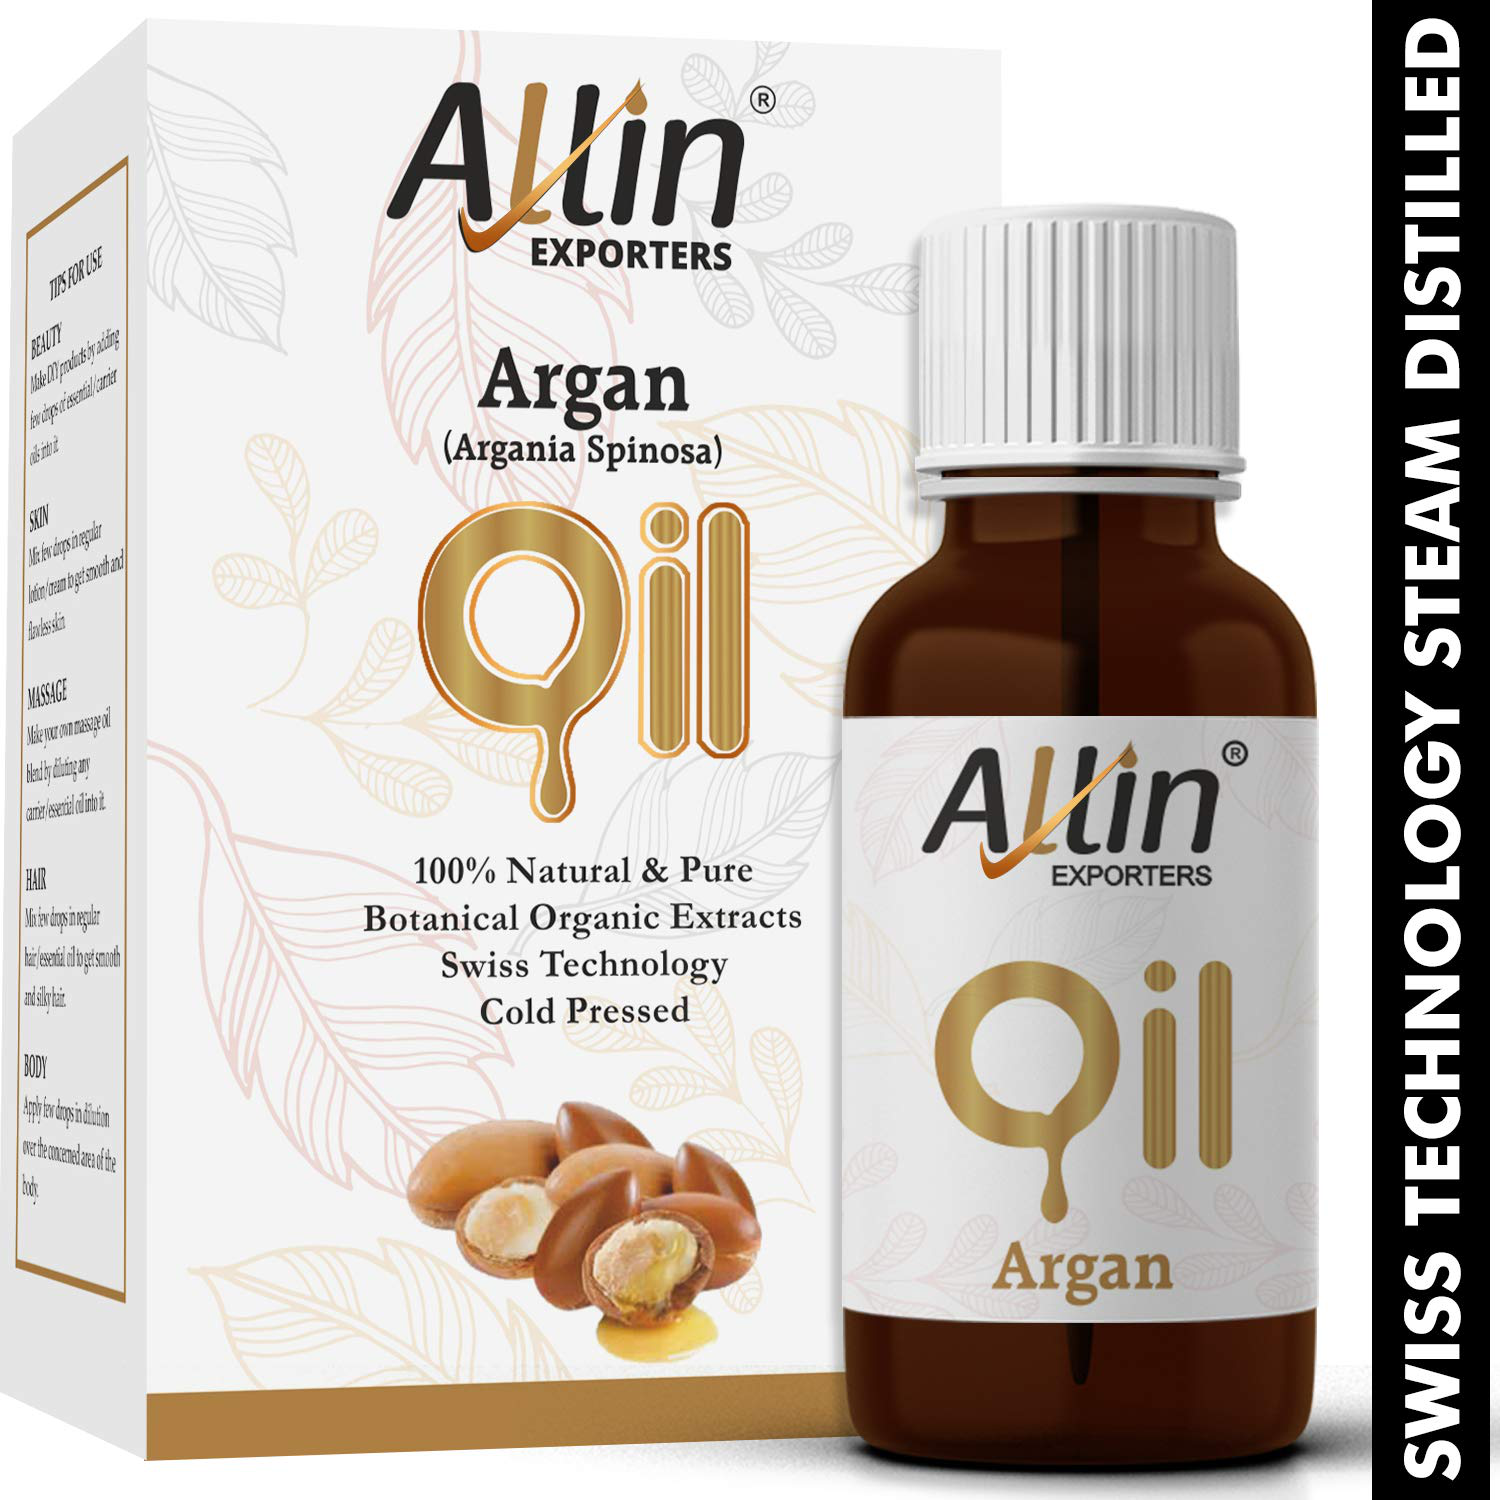 Allin Exporters Cold Pressed Argan Oil, 15ml